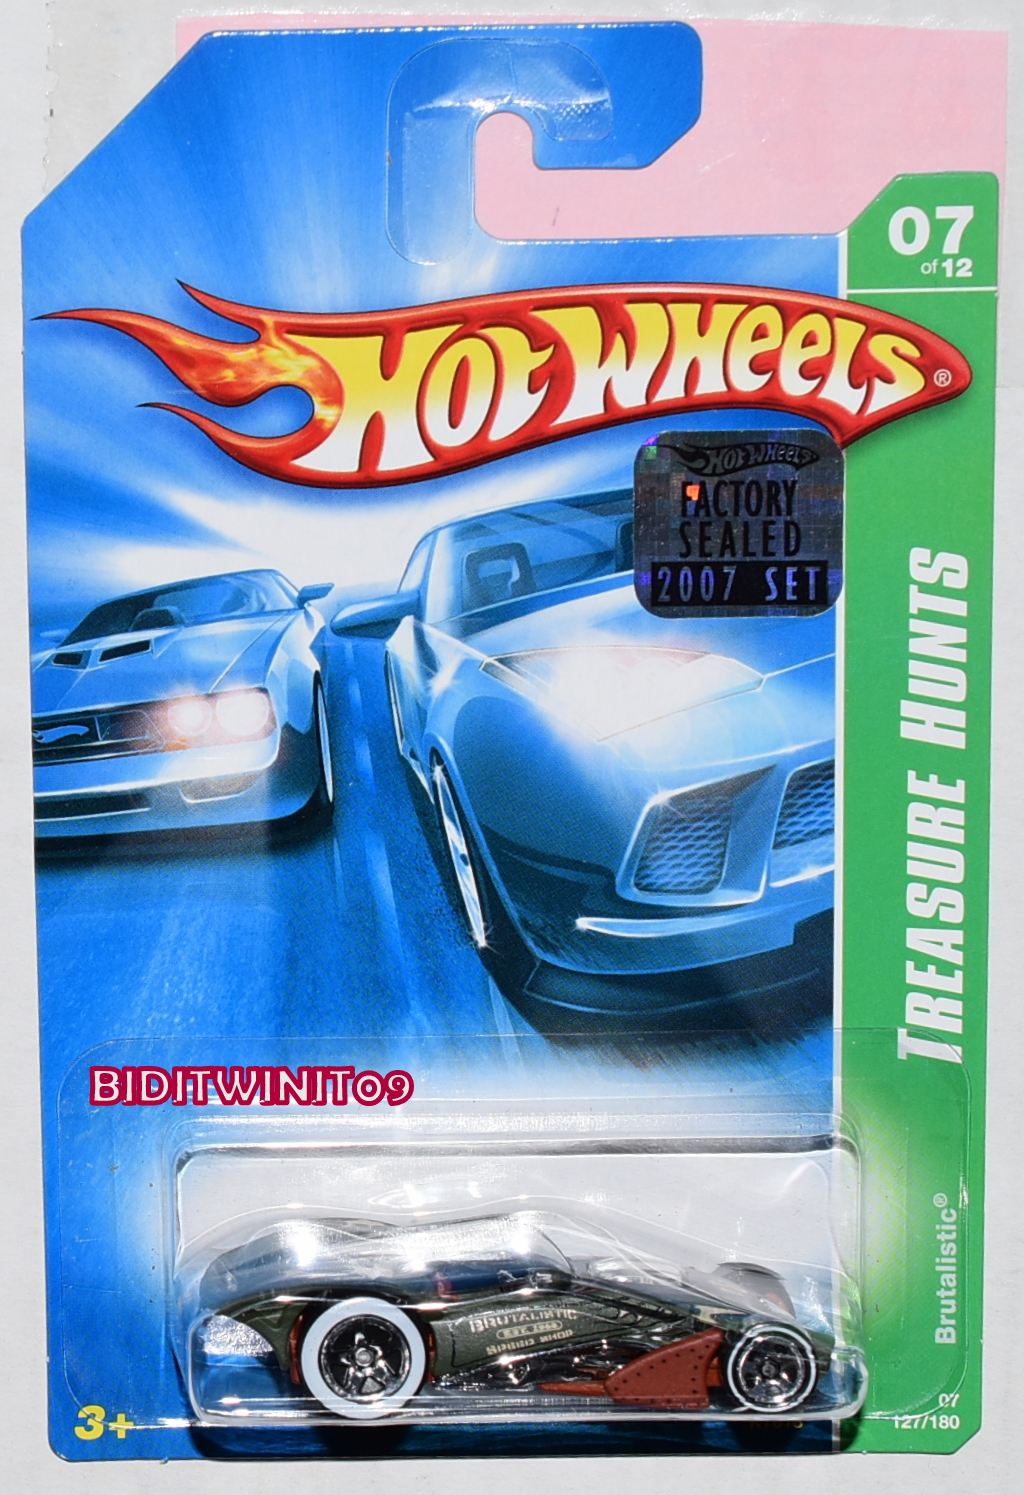 HOT WHEELS 2007 BASIC TREASURE HUNT BRUTALISTIC #07/12 FACTORY SEALED